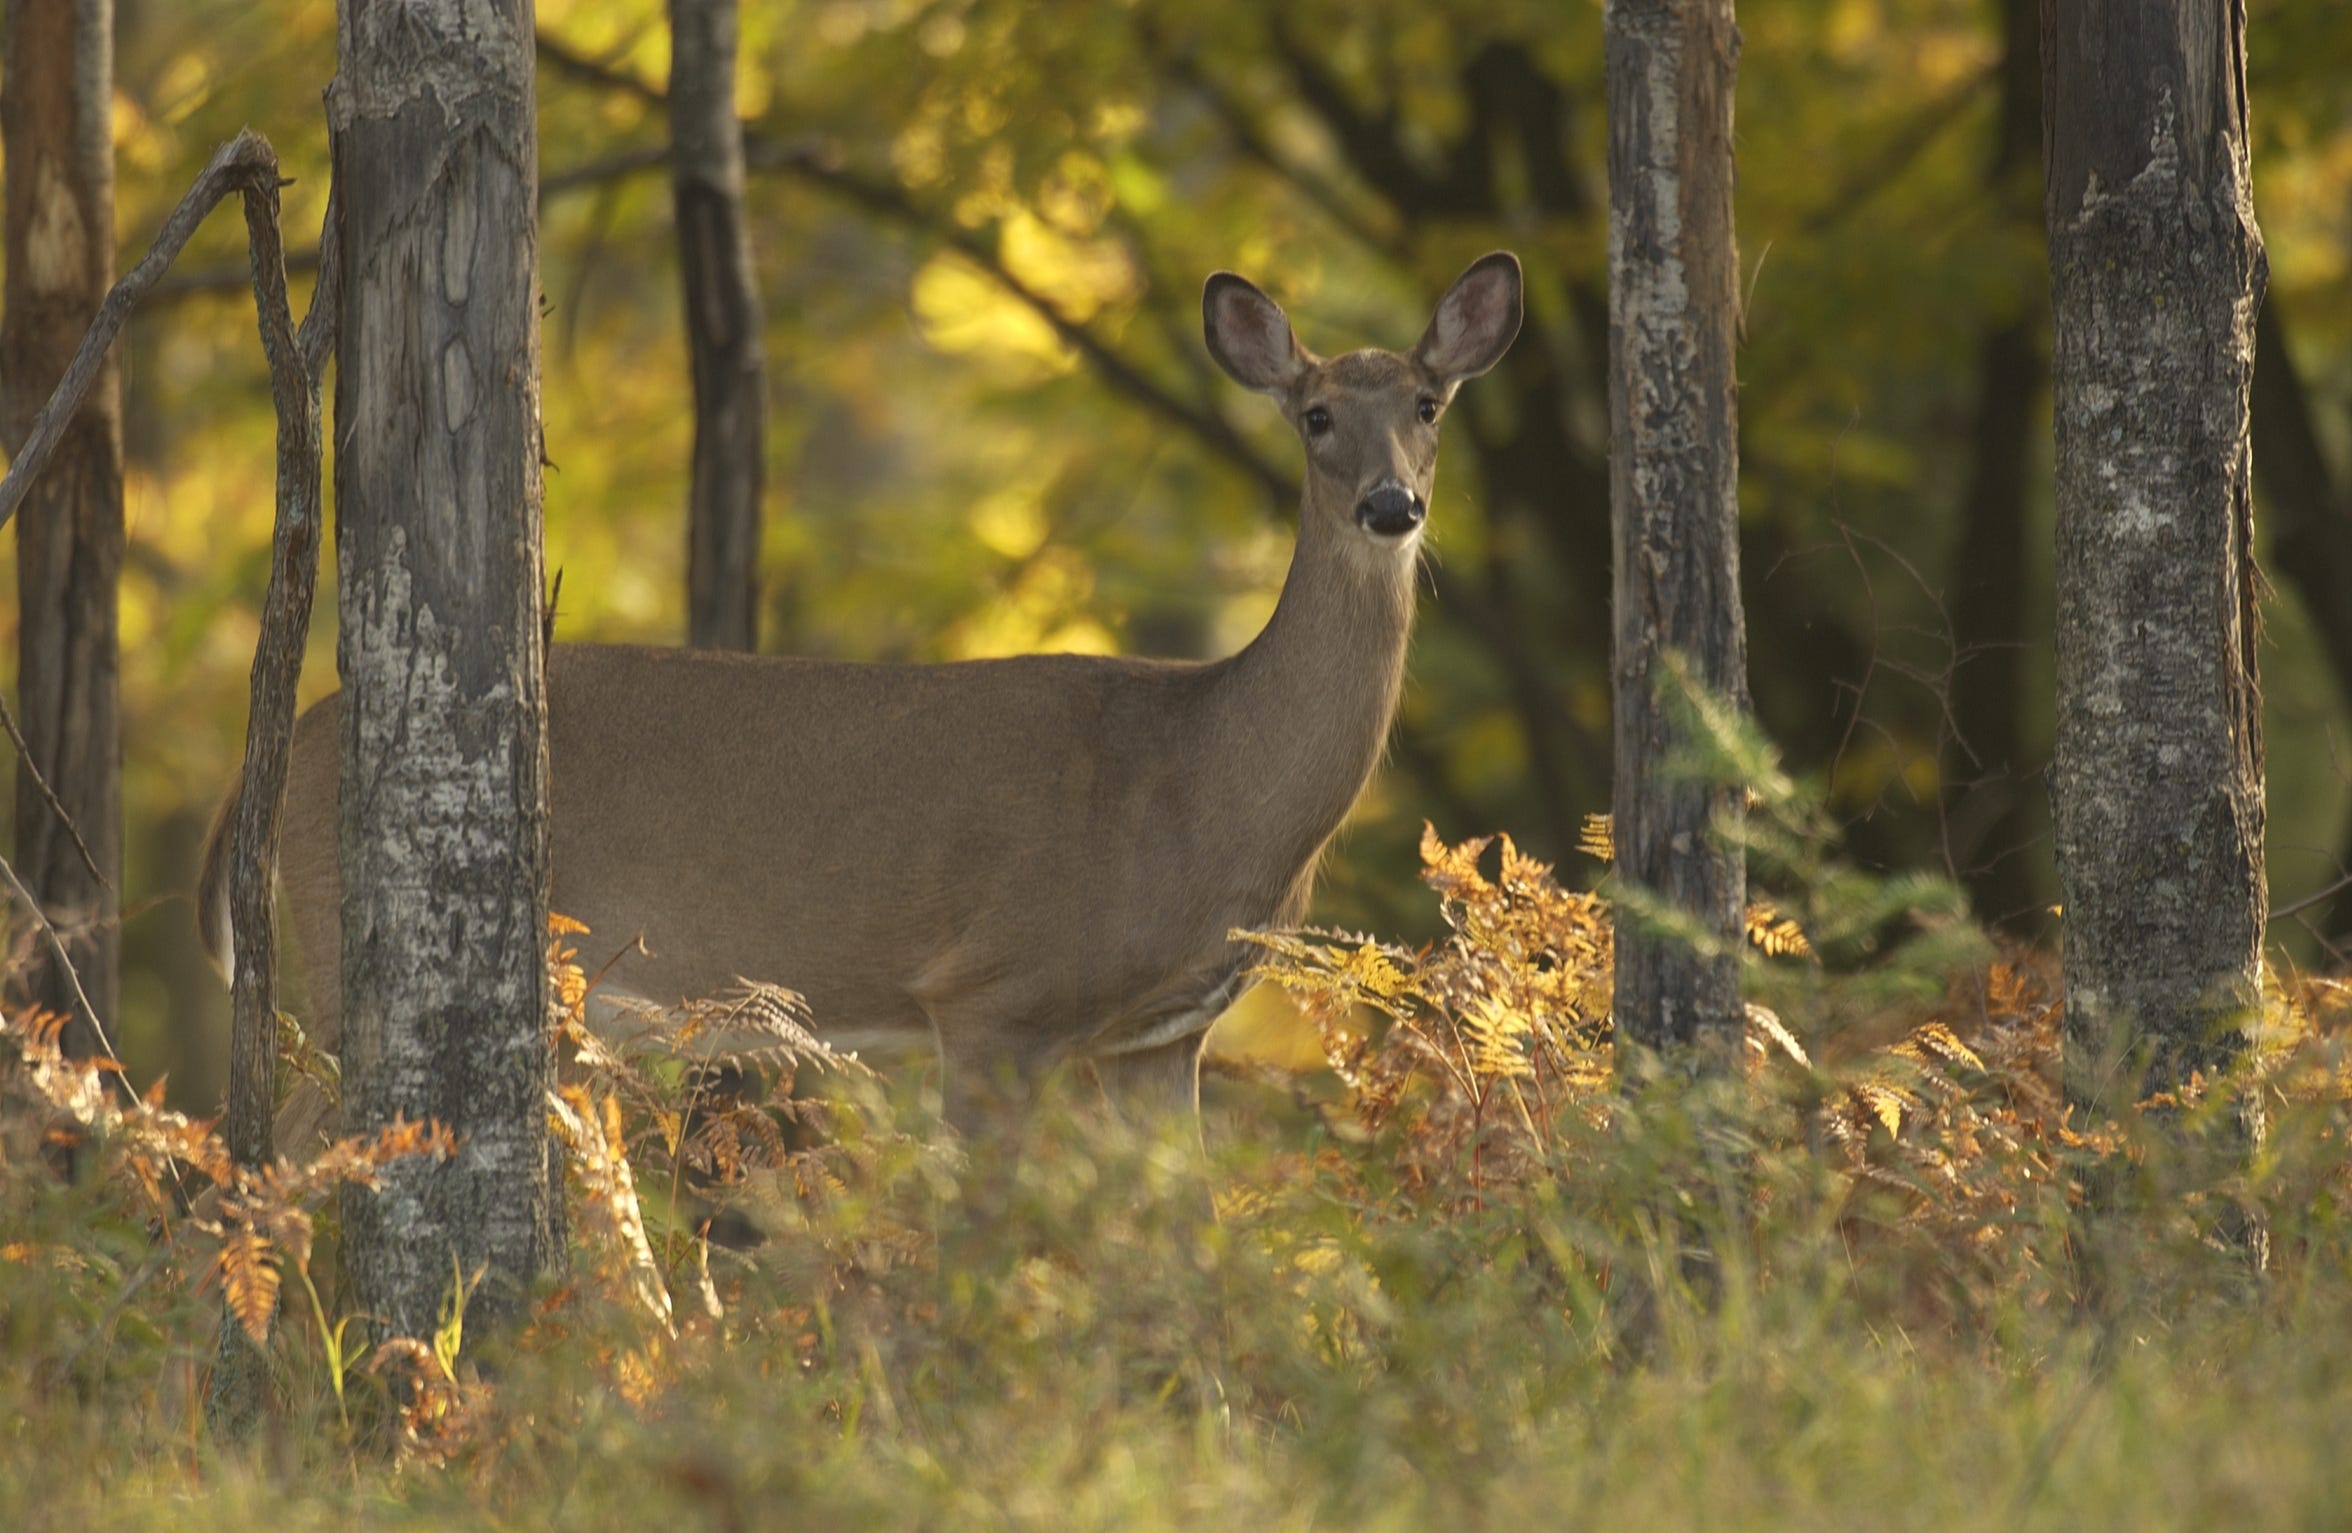 Archery deer season starts Monday in Michigan. The traditional firearms season is Nov. 15-30.